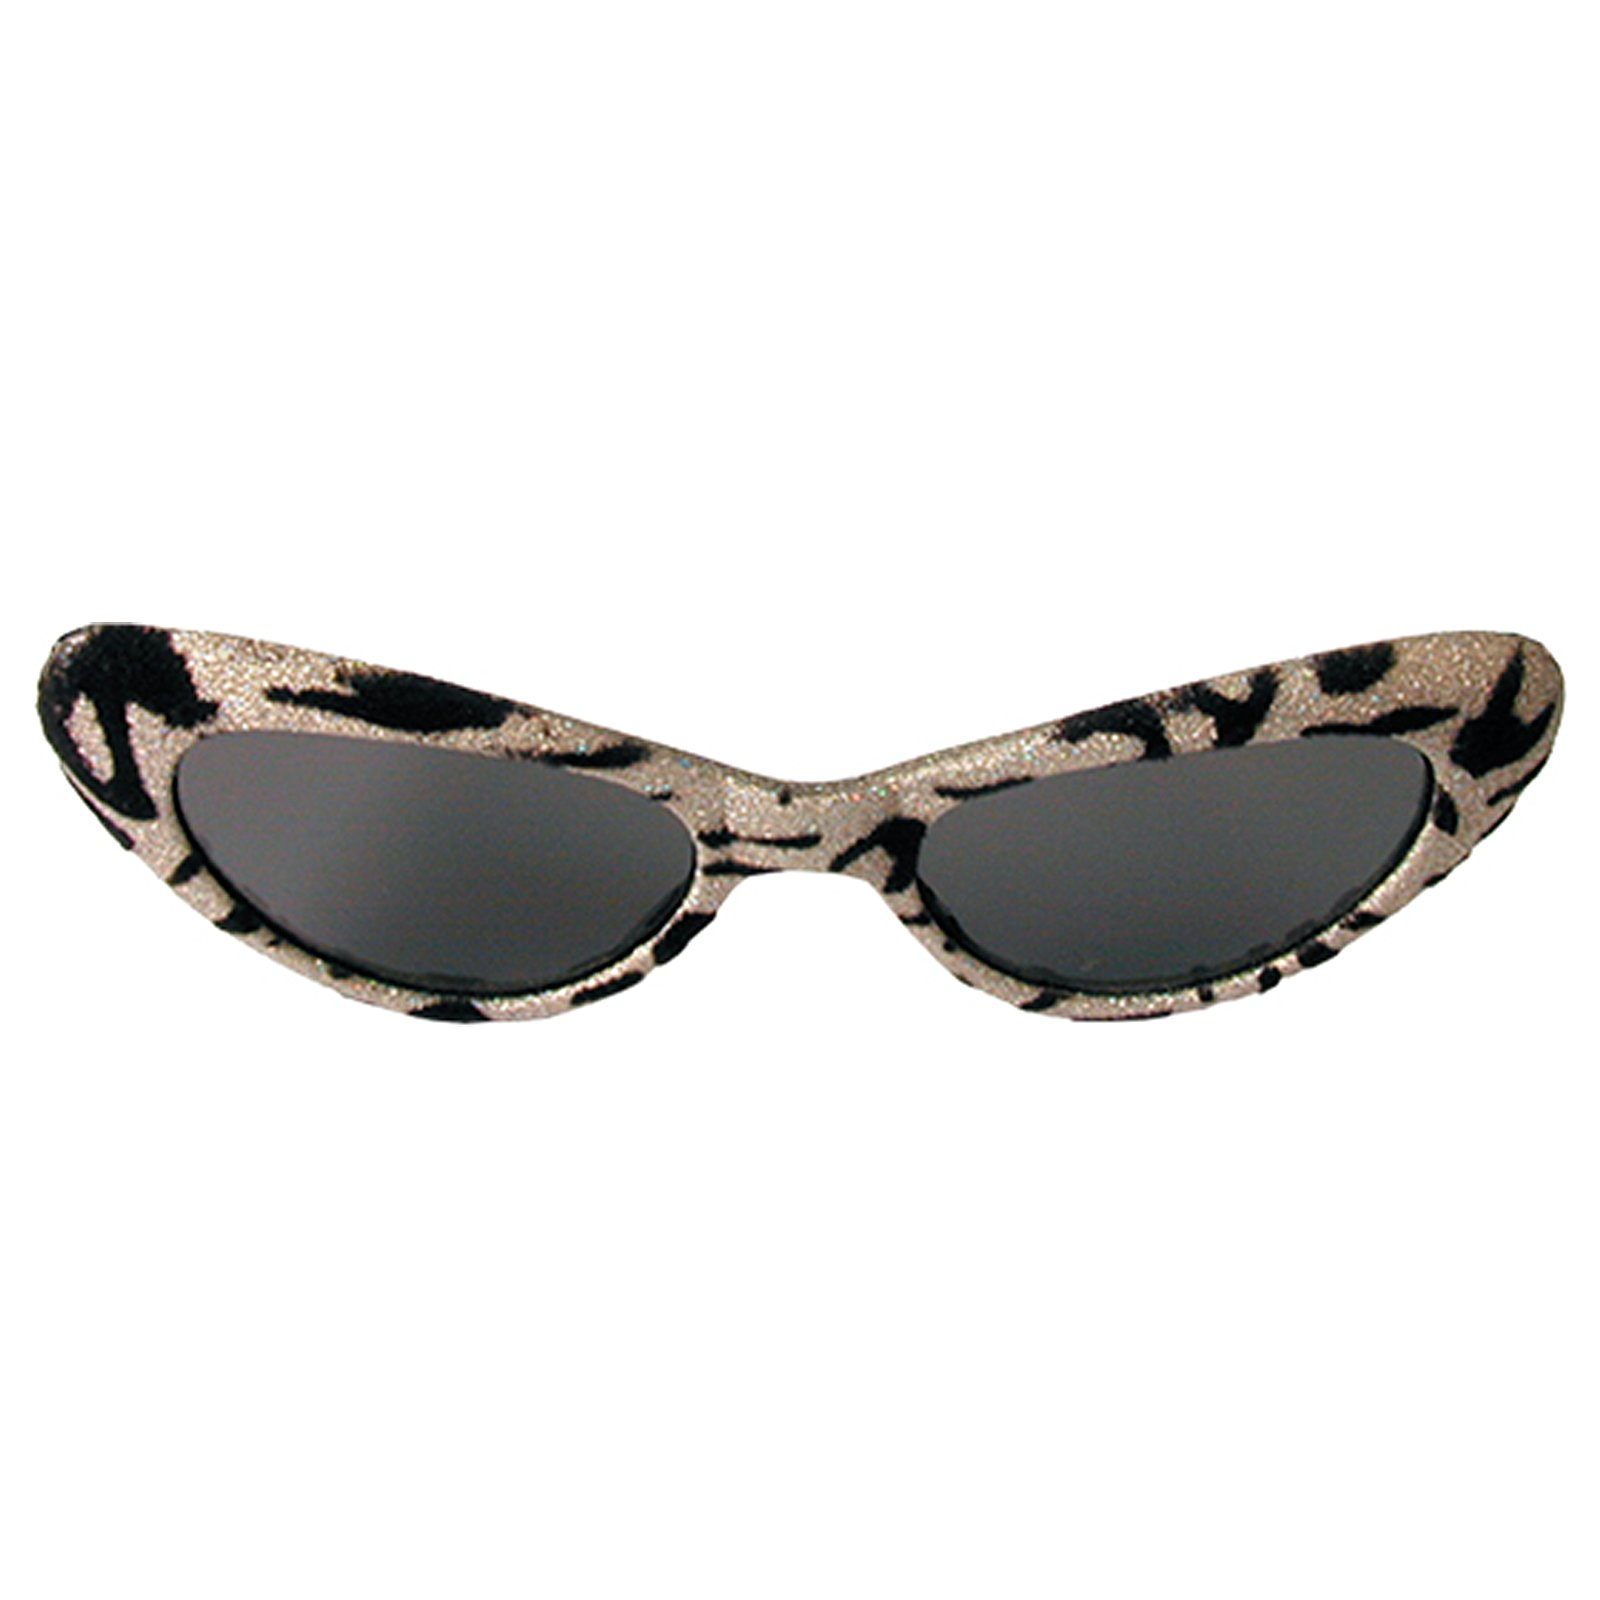 1950's Cat Eye Glasses - Gold & Black